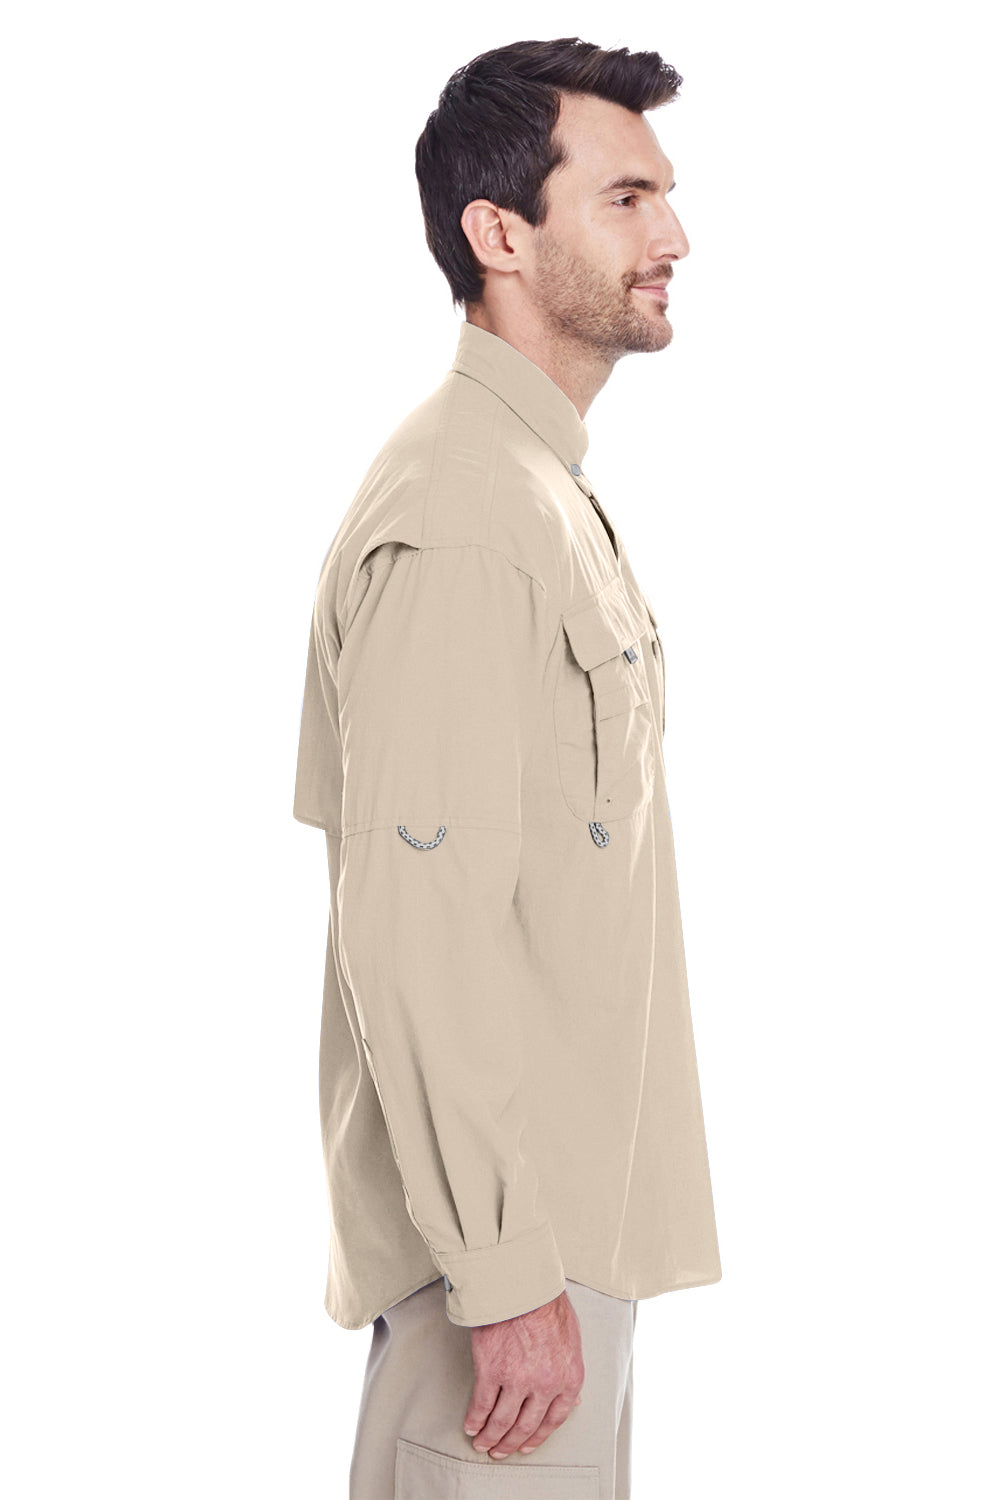 Columbia 7048 Mens Bahama II Moisture Wicking Long Sleeve Button Down Shirt w/ Double Pockets Fossil Brown Side